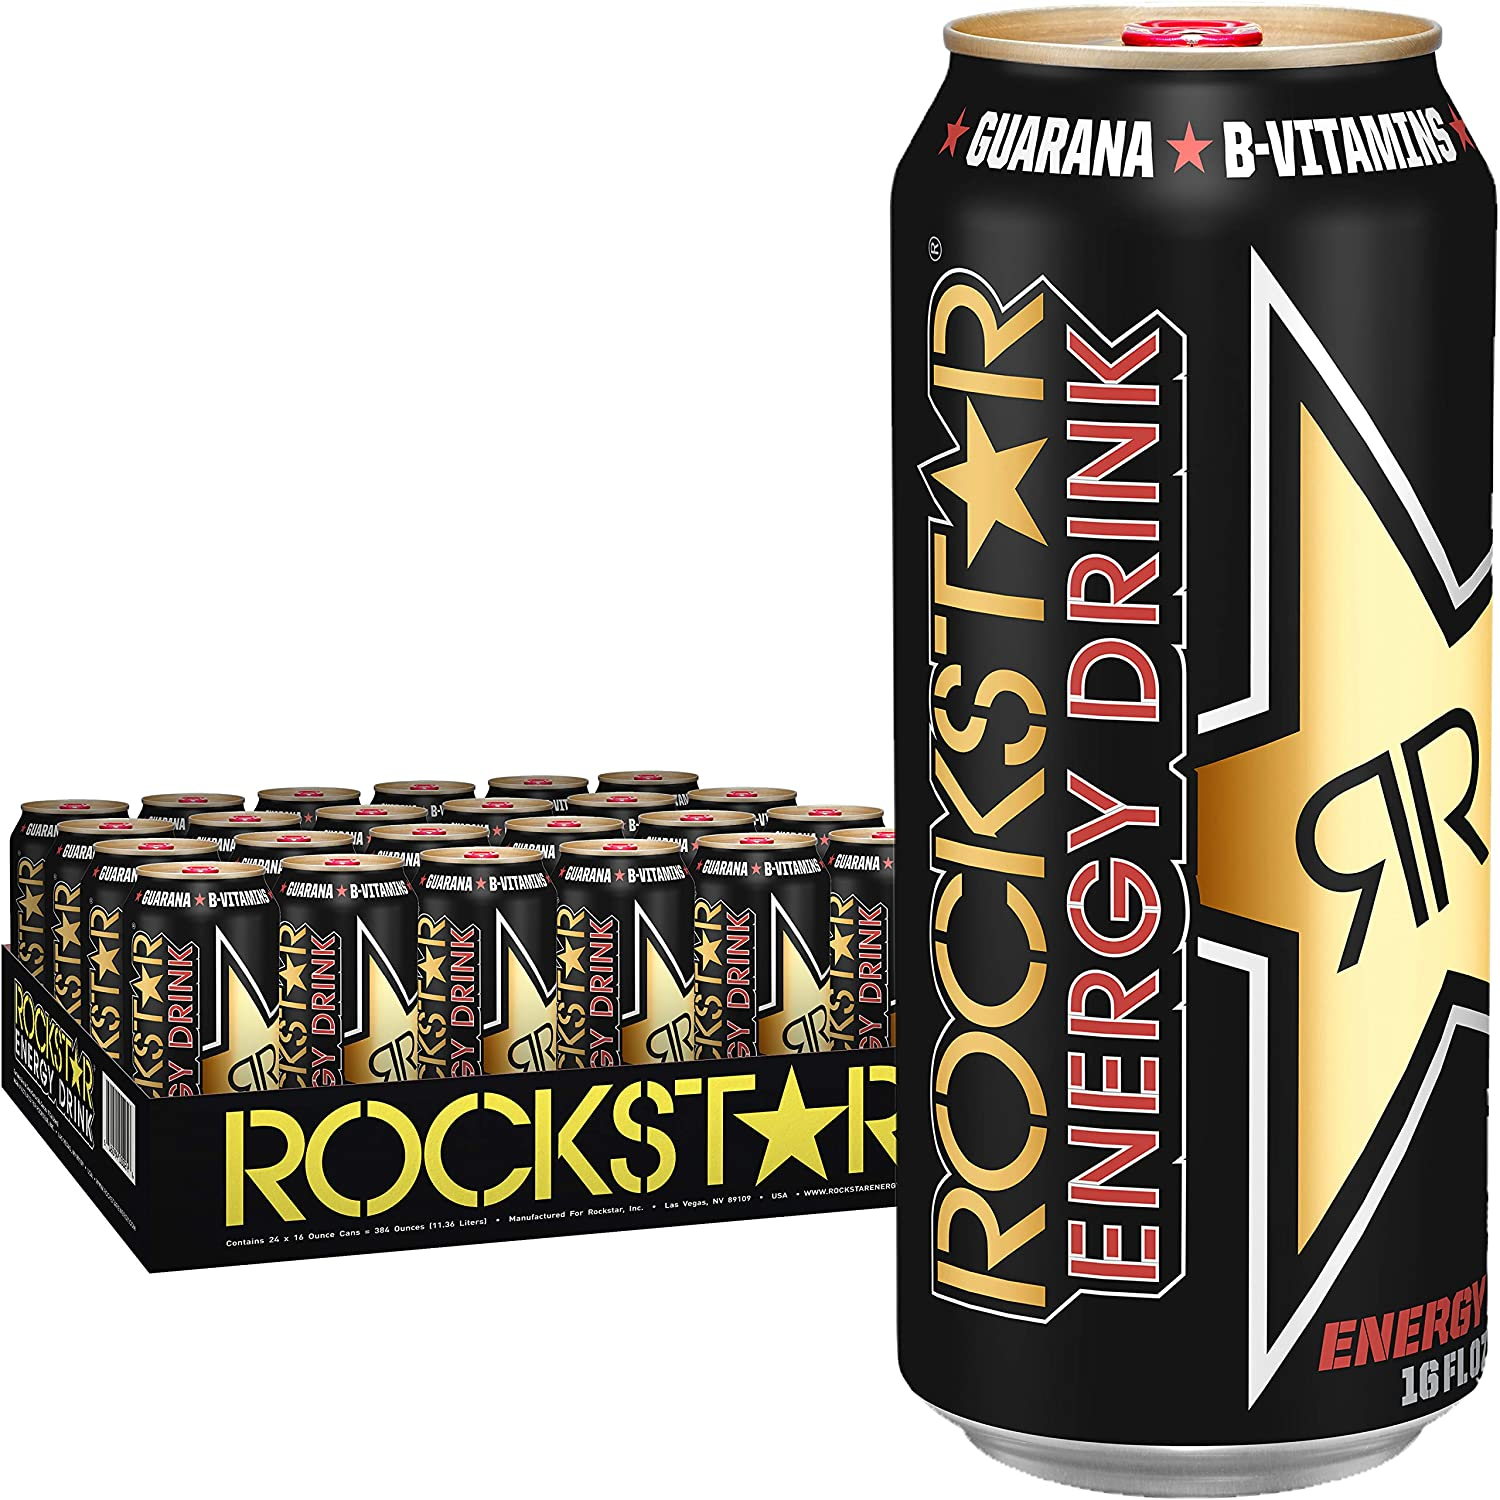 Rockstar Energy Drink, 16 Oz Cans (Pack Of 24)